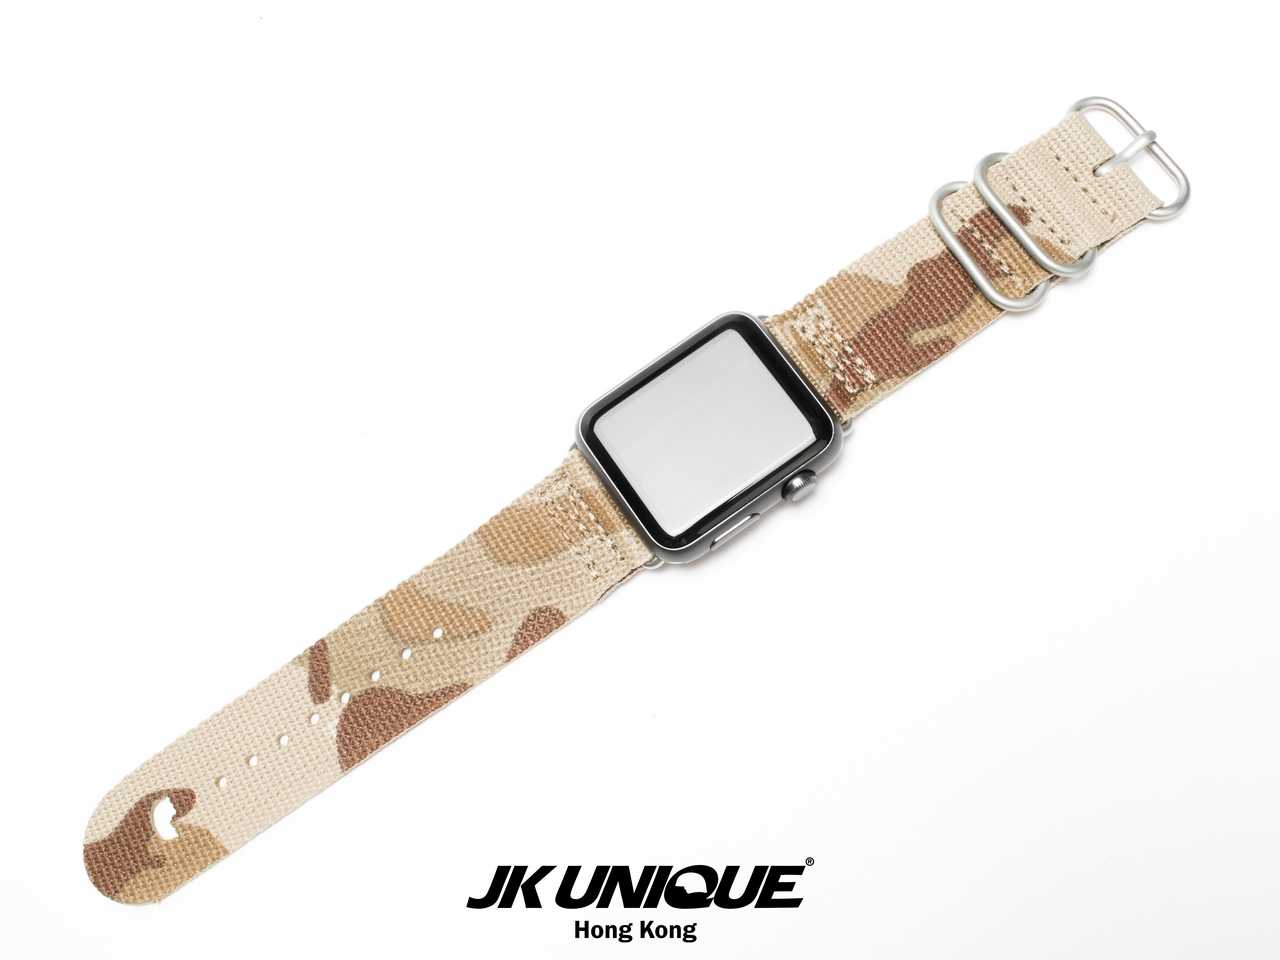 JK-UNIQUE-CAMO-NATO-Apple-Watch-Strap-42mm-SV-Multicam-Arid-3 (1280).jpg